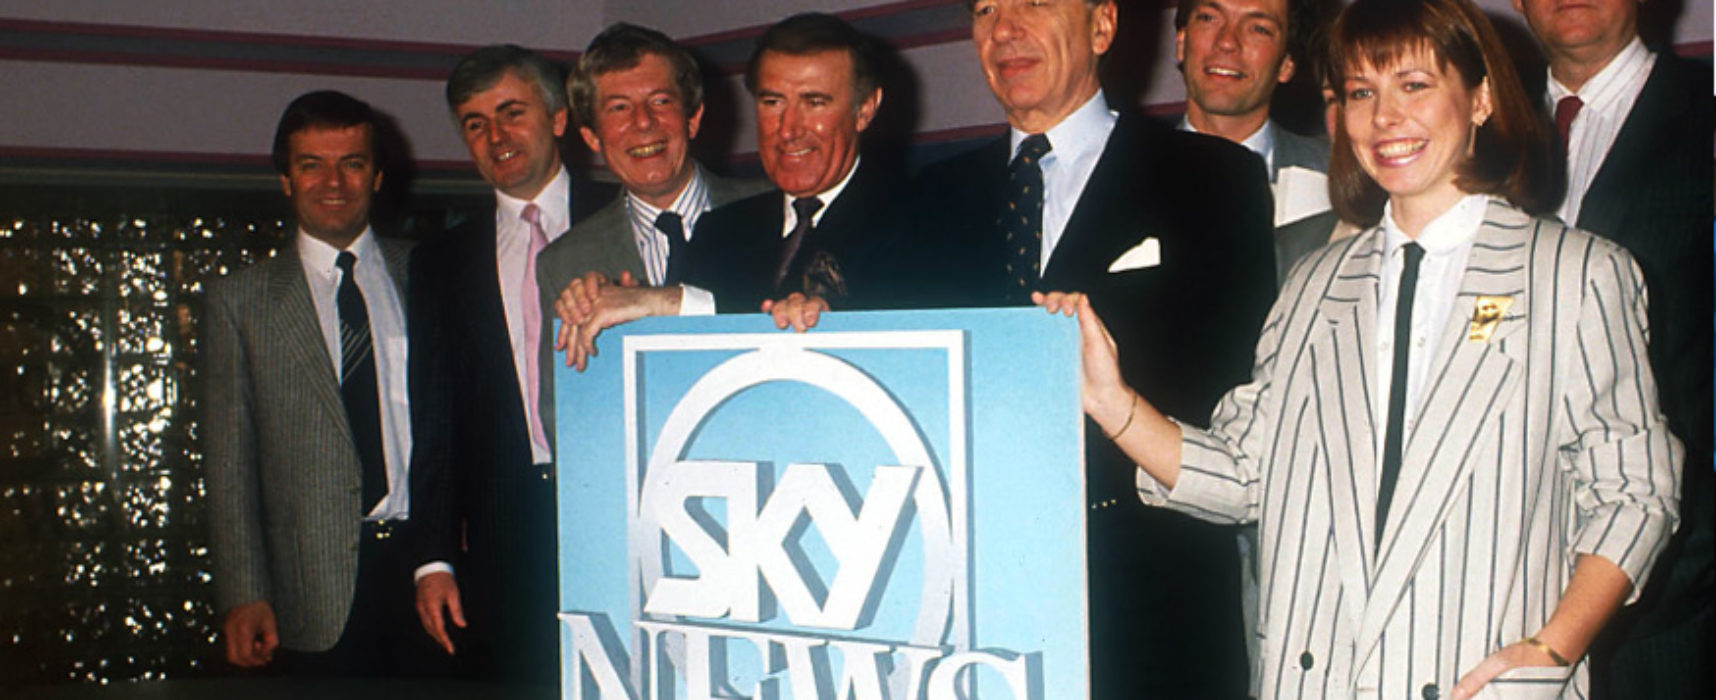 Sky News marks 30th anniversary